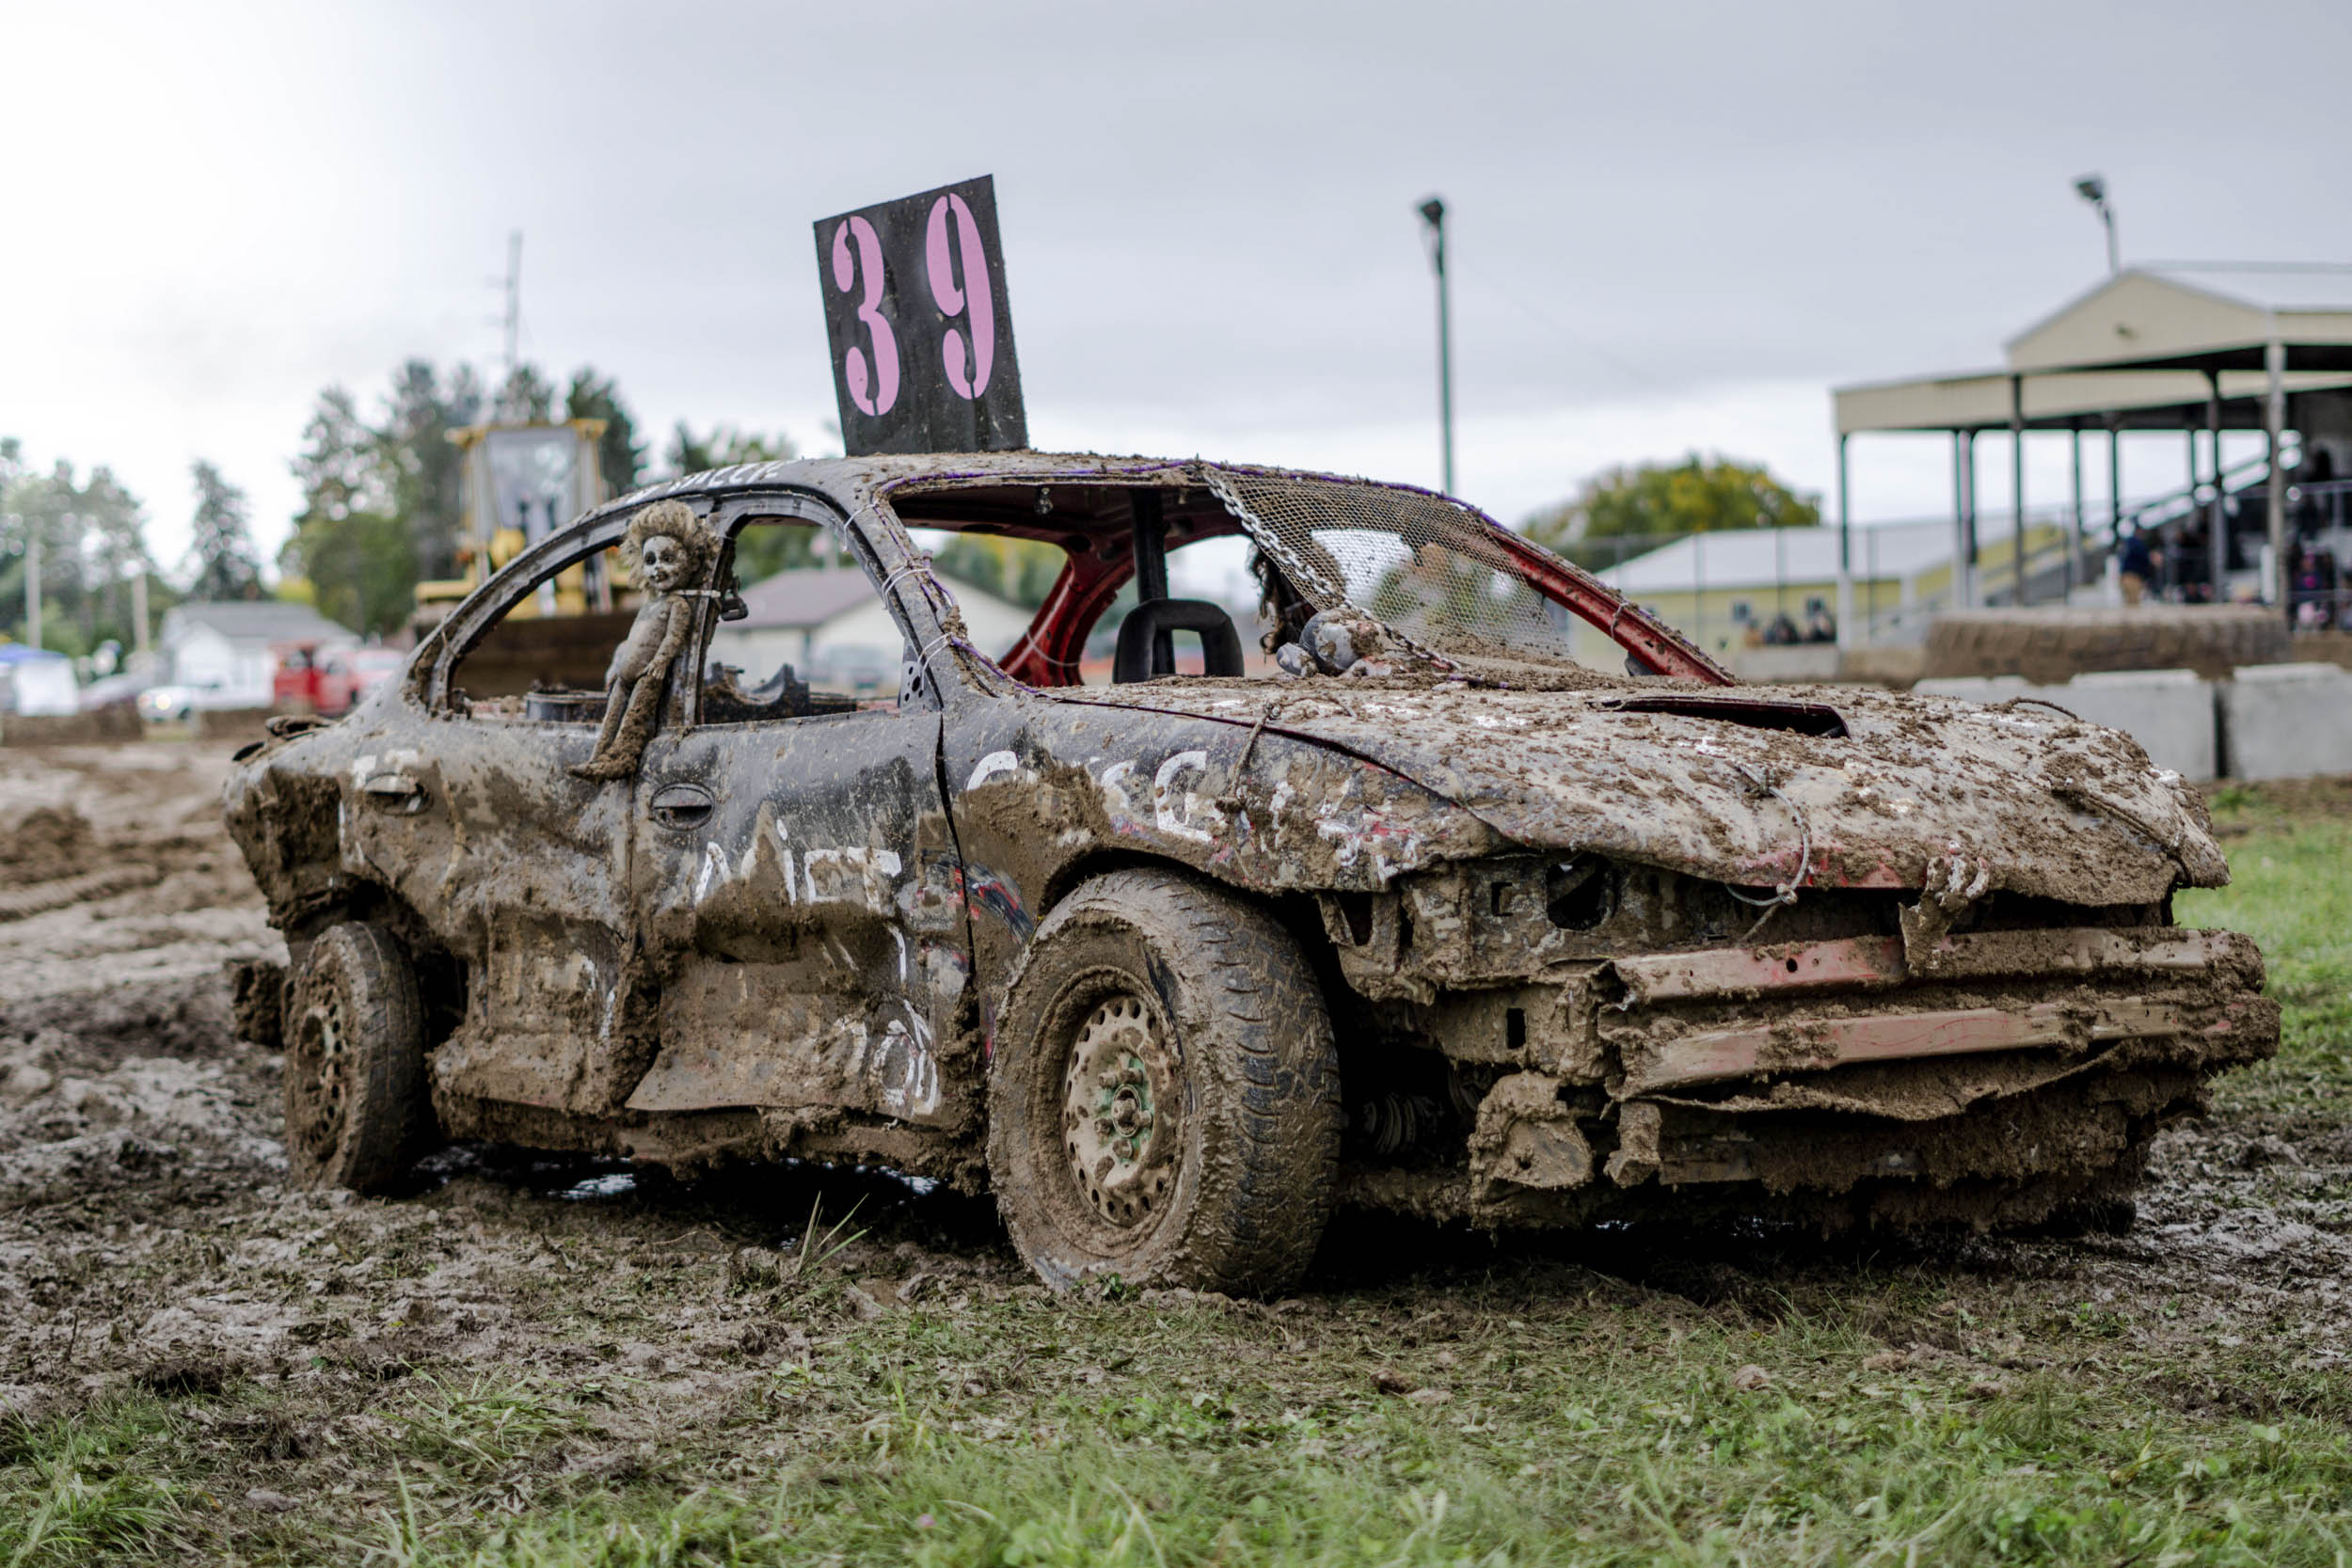 demolition derby beat up